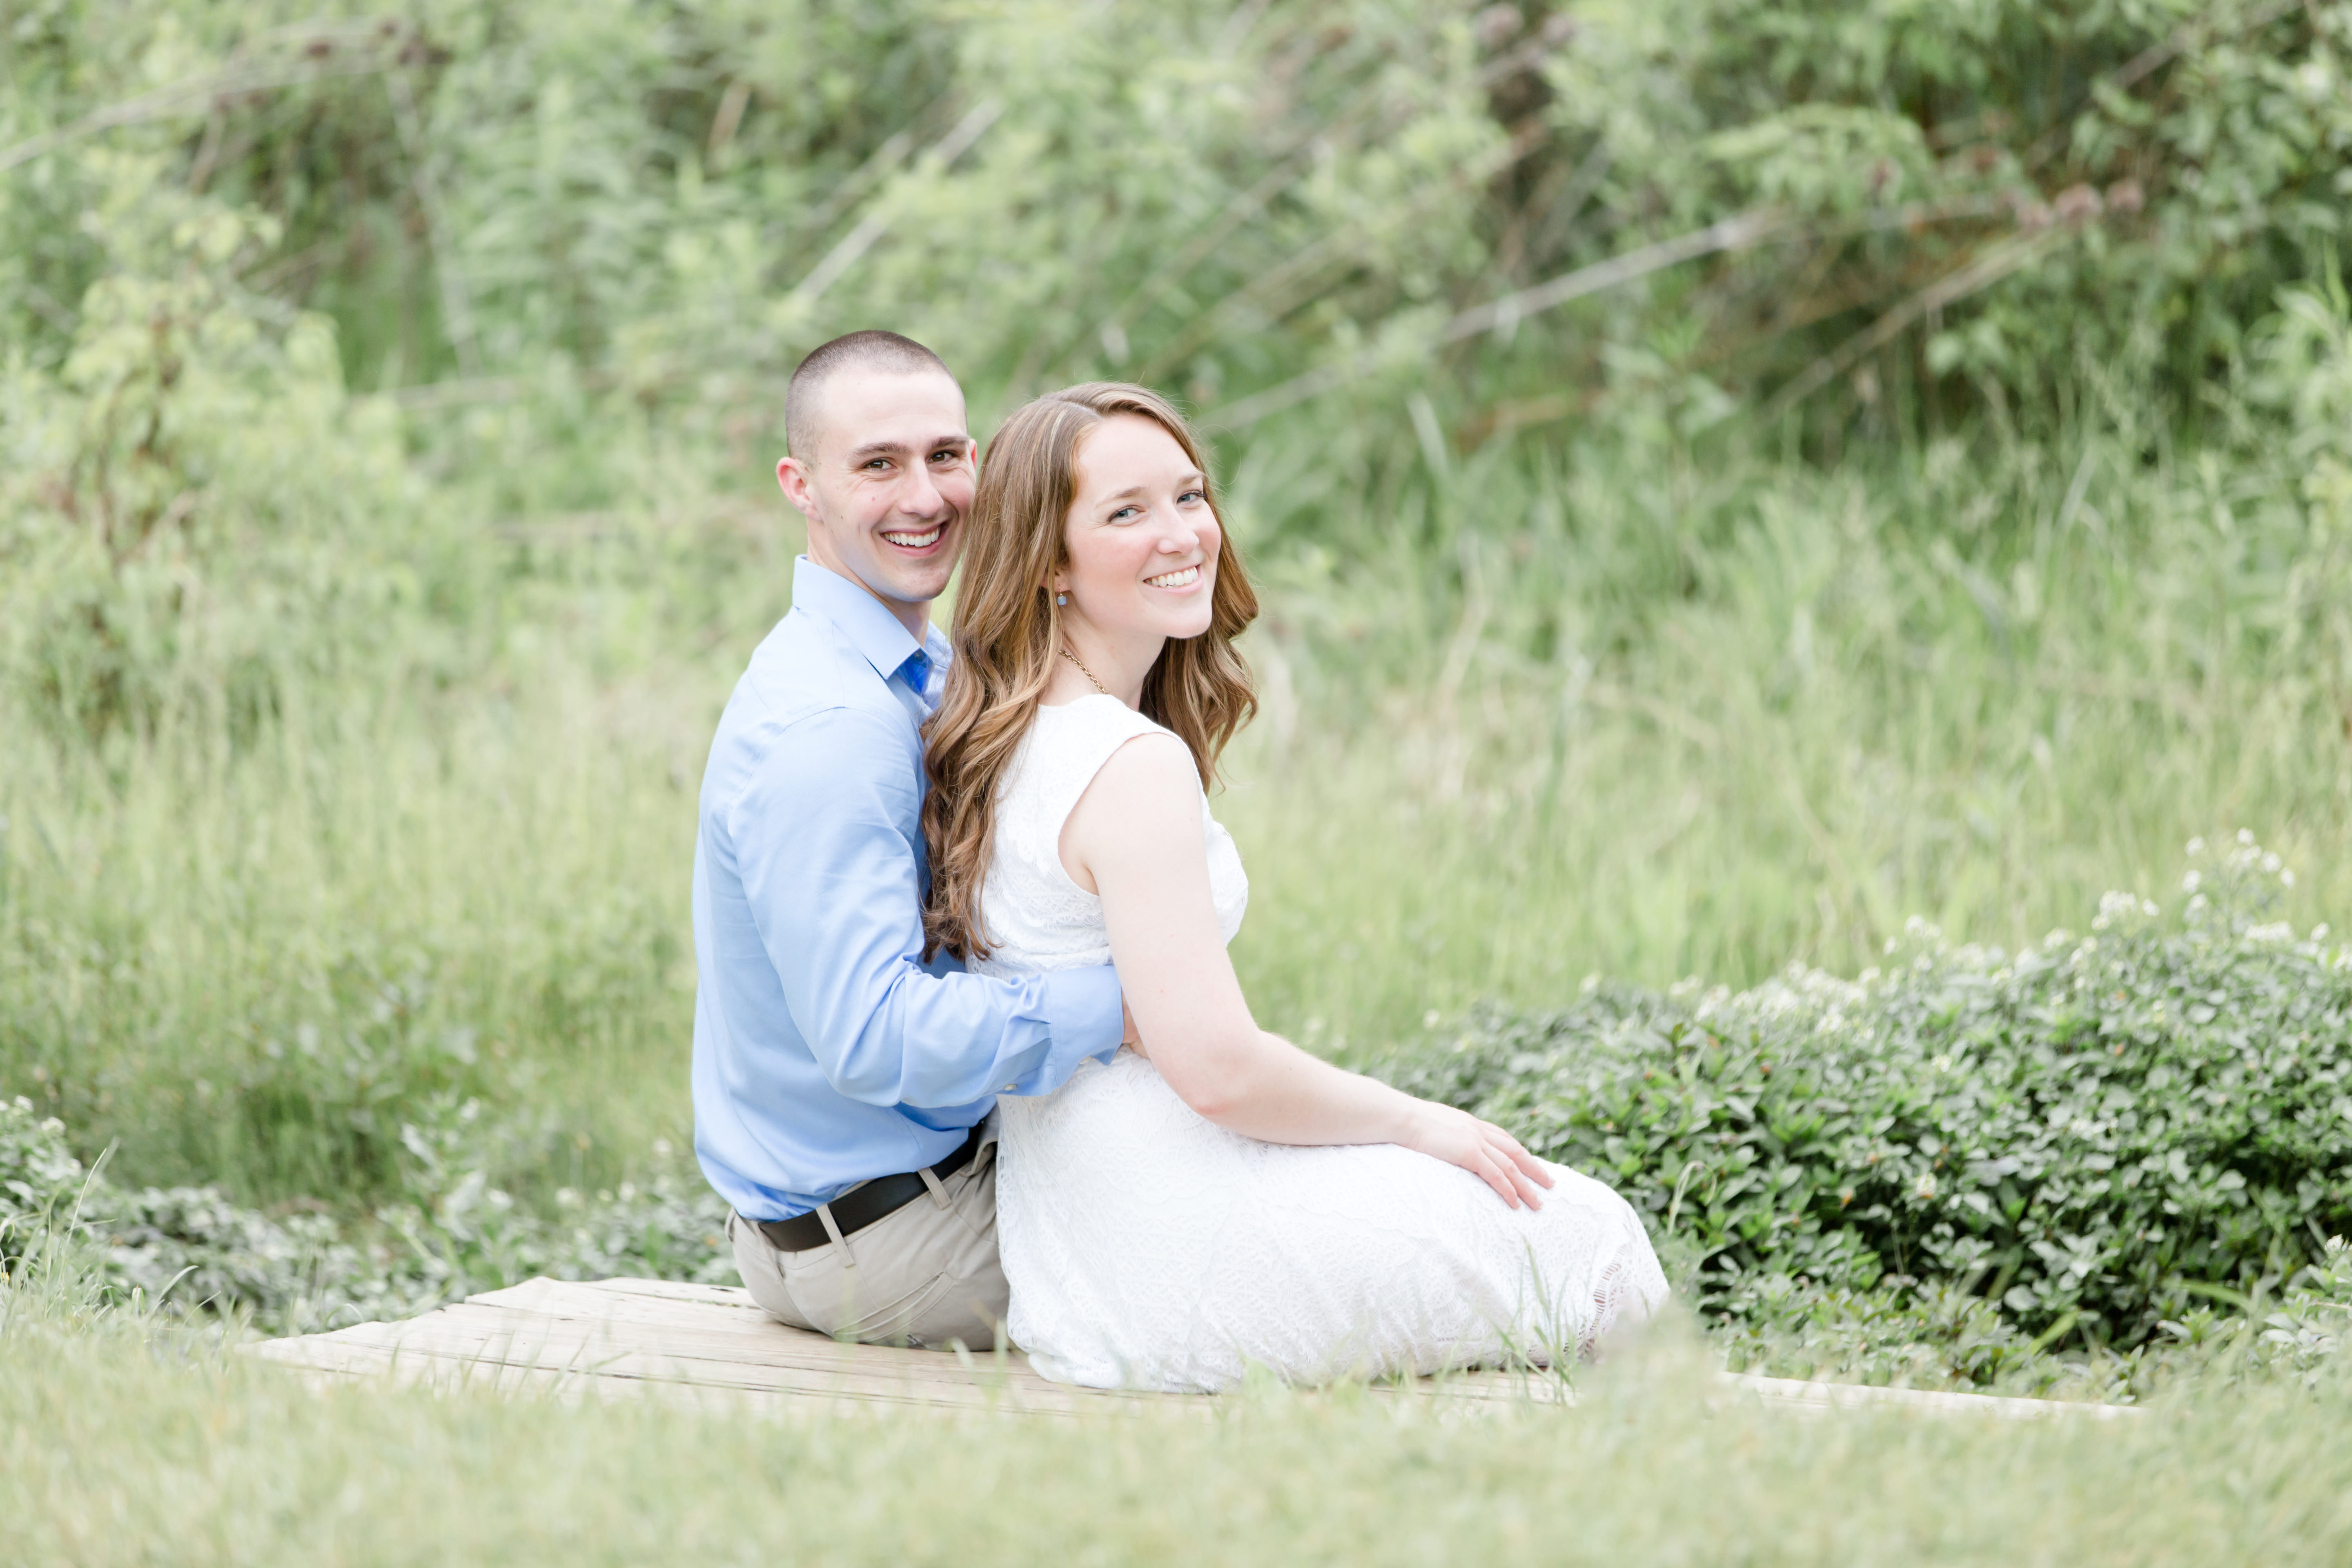 Engagement photo at Millbrook Marsh State College